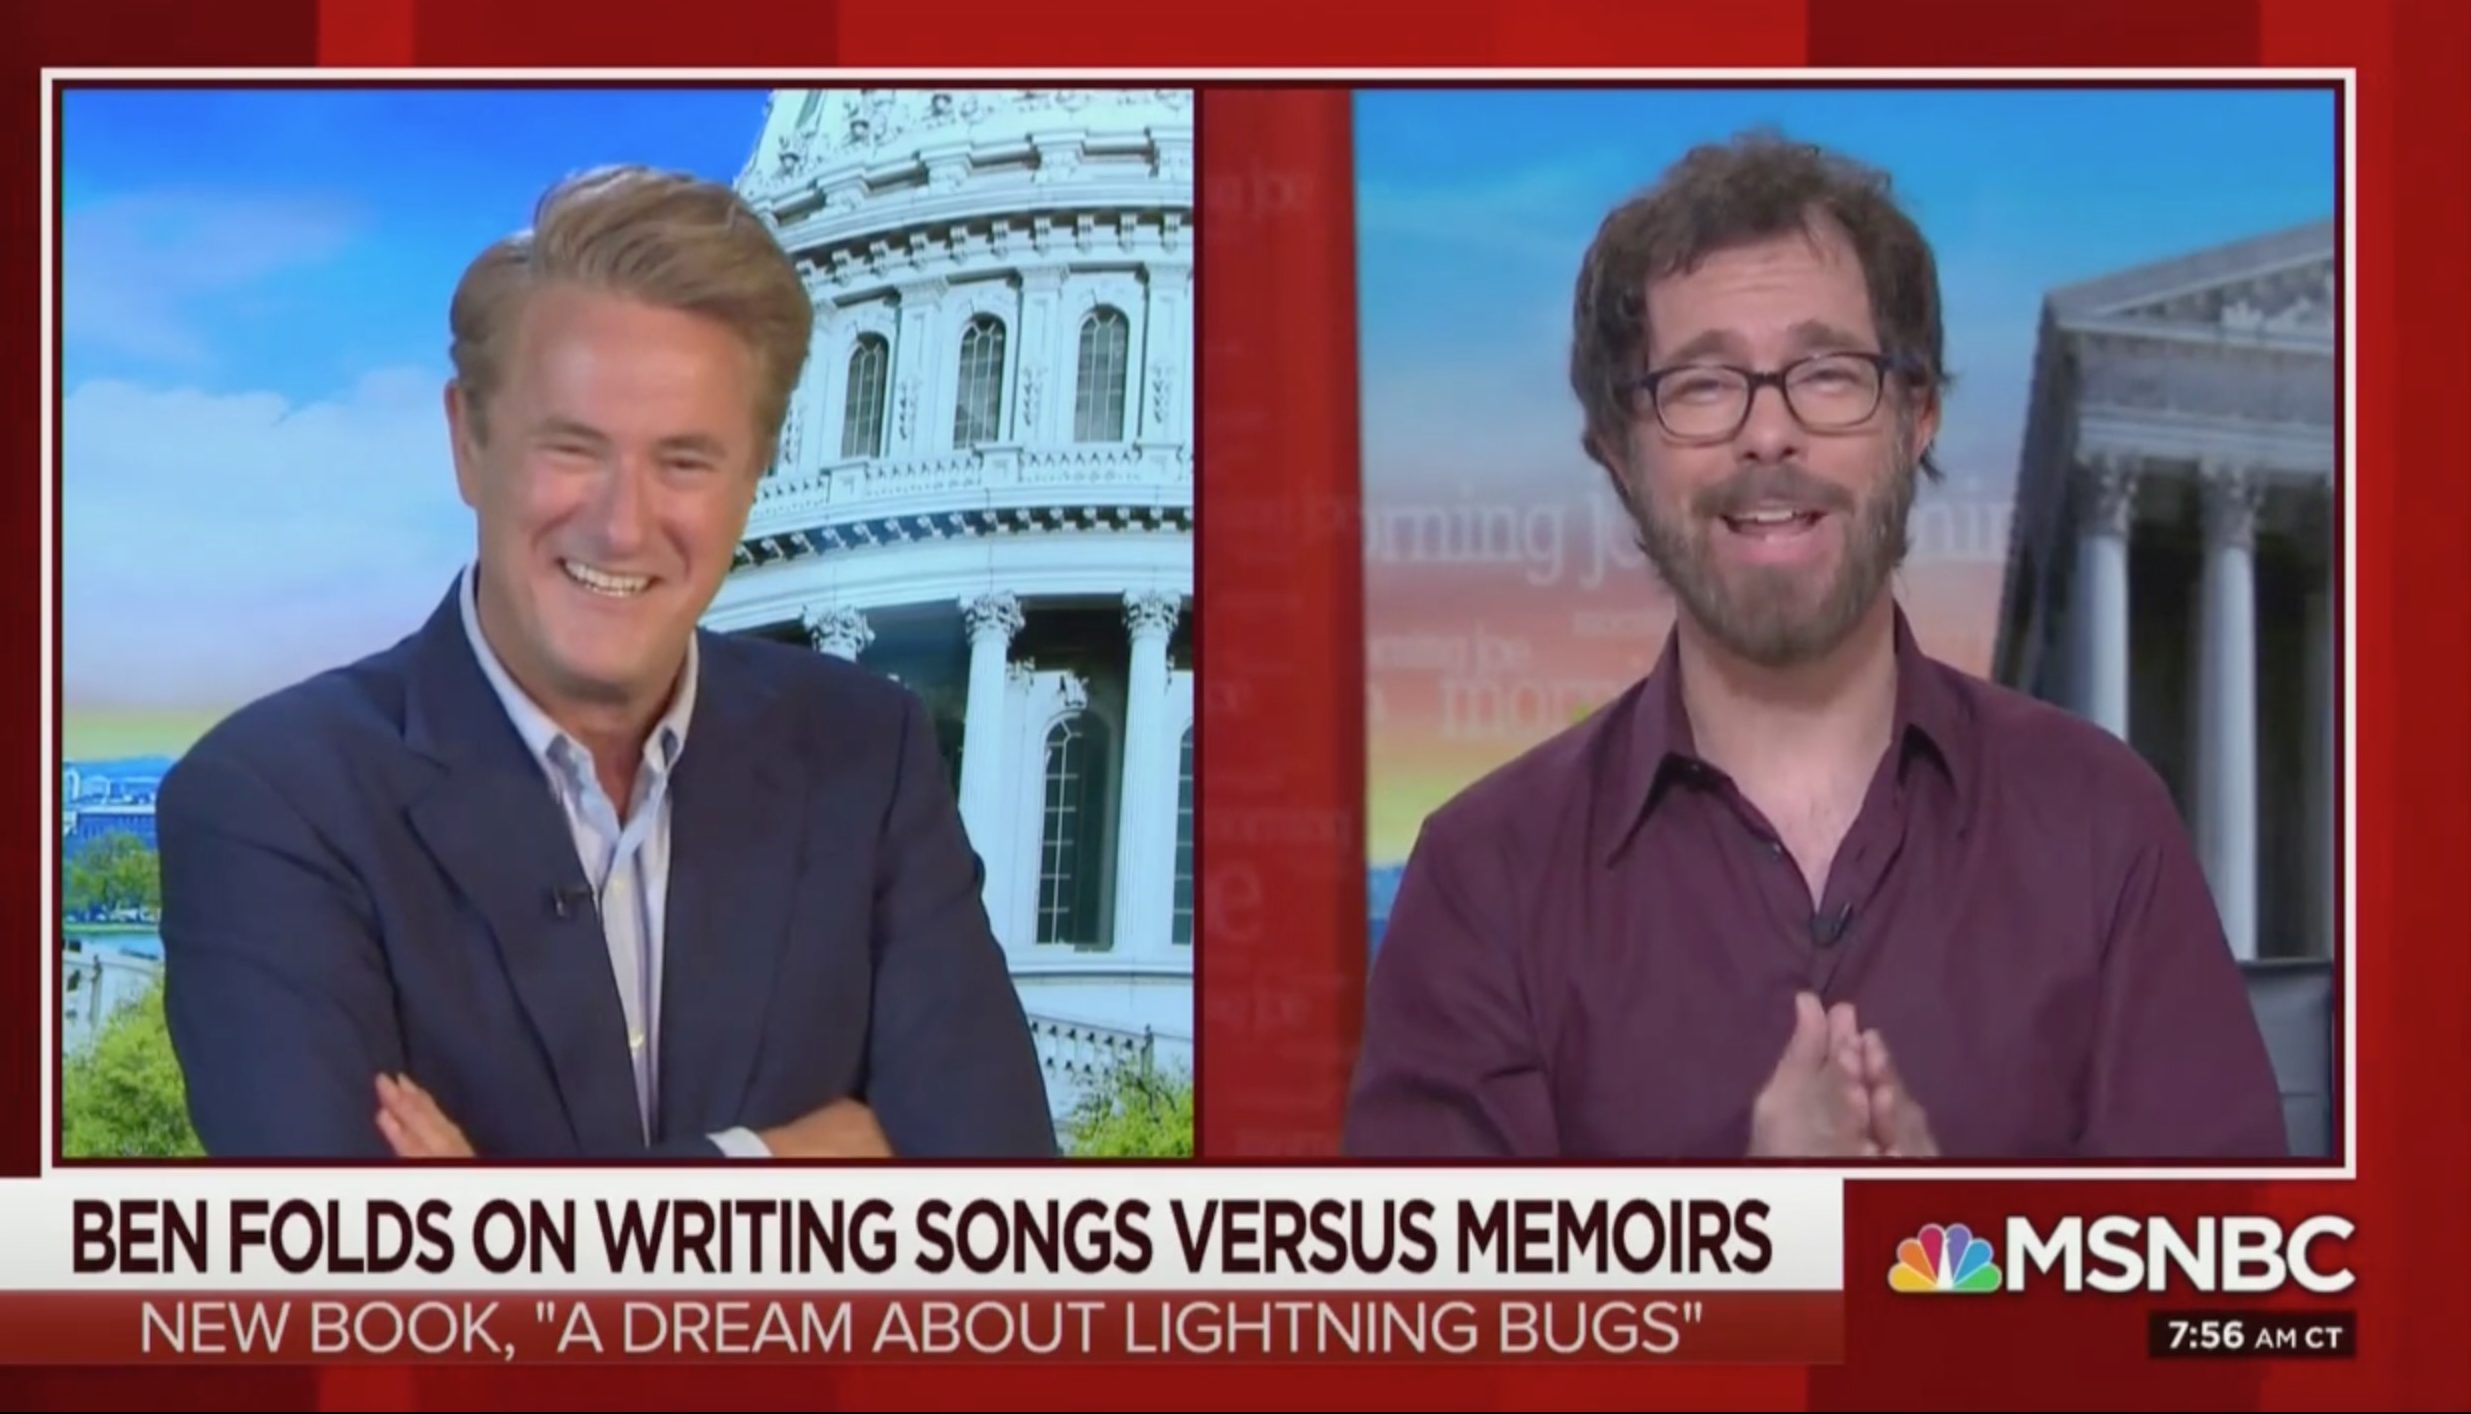 Joe Scarborough Coos Over Praise From Ben Folds for Coining 'Moscow Mitch': 'Been Writing Songs Since I Was 12 or 13'